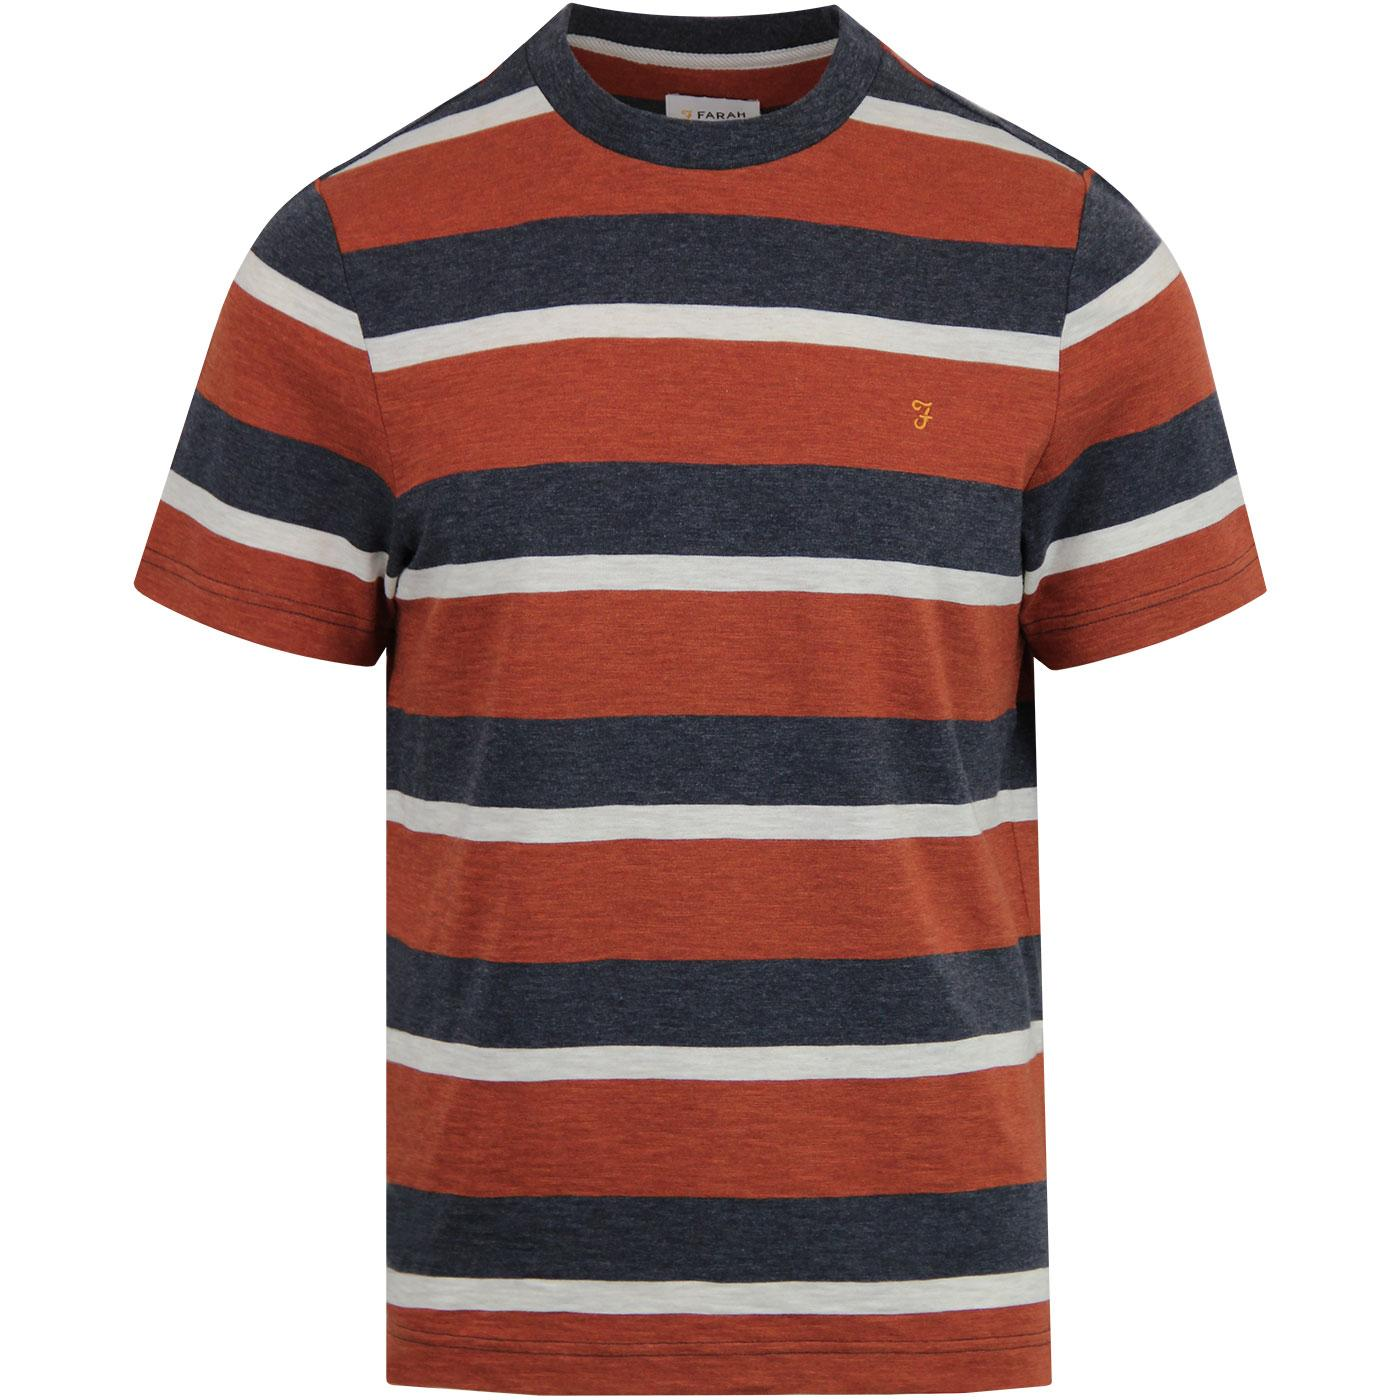 FARAH Mens Retro Mod Celtic Stripe Marl Tee (Rust)